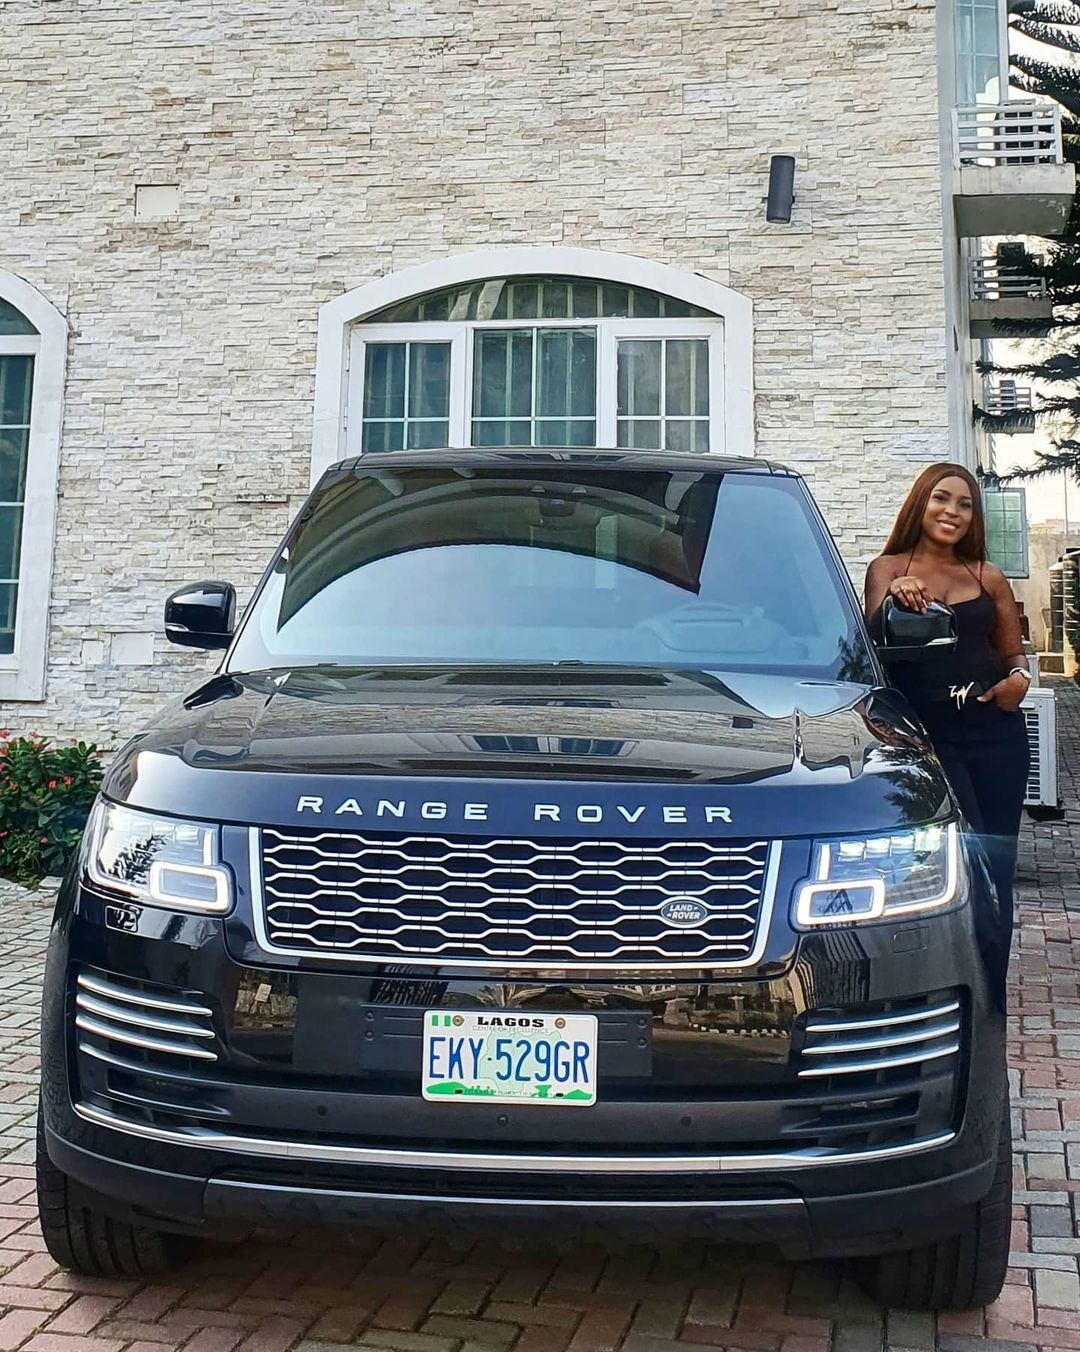 Linda Ikeji Shows Off 2020 Range Rover Autobiography Car She Just Bought (Photos)